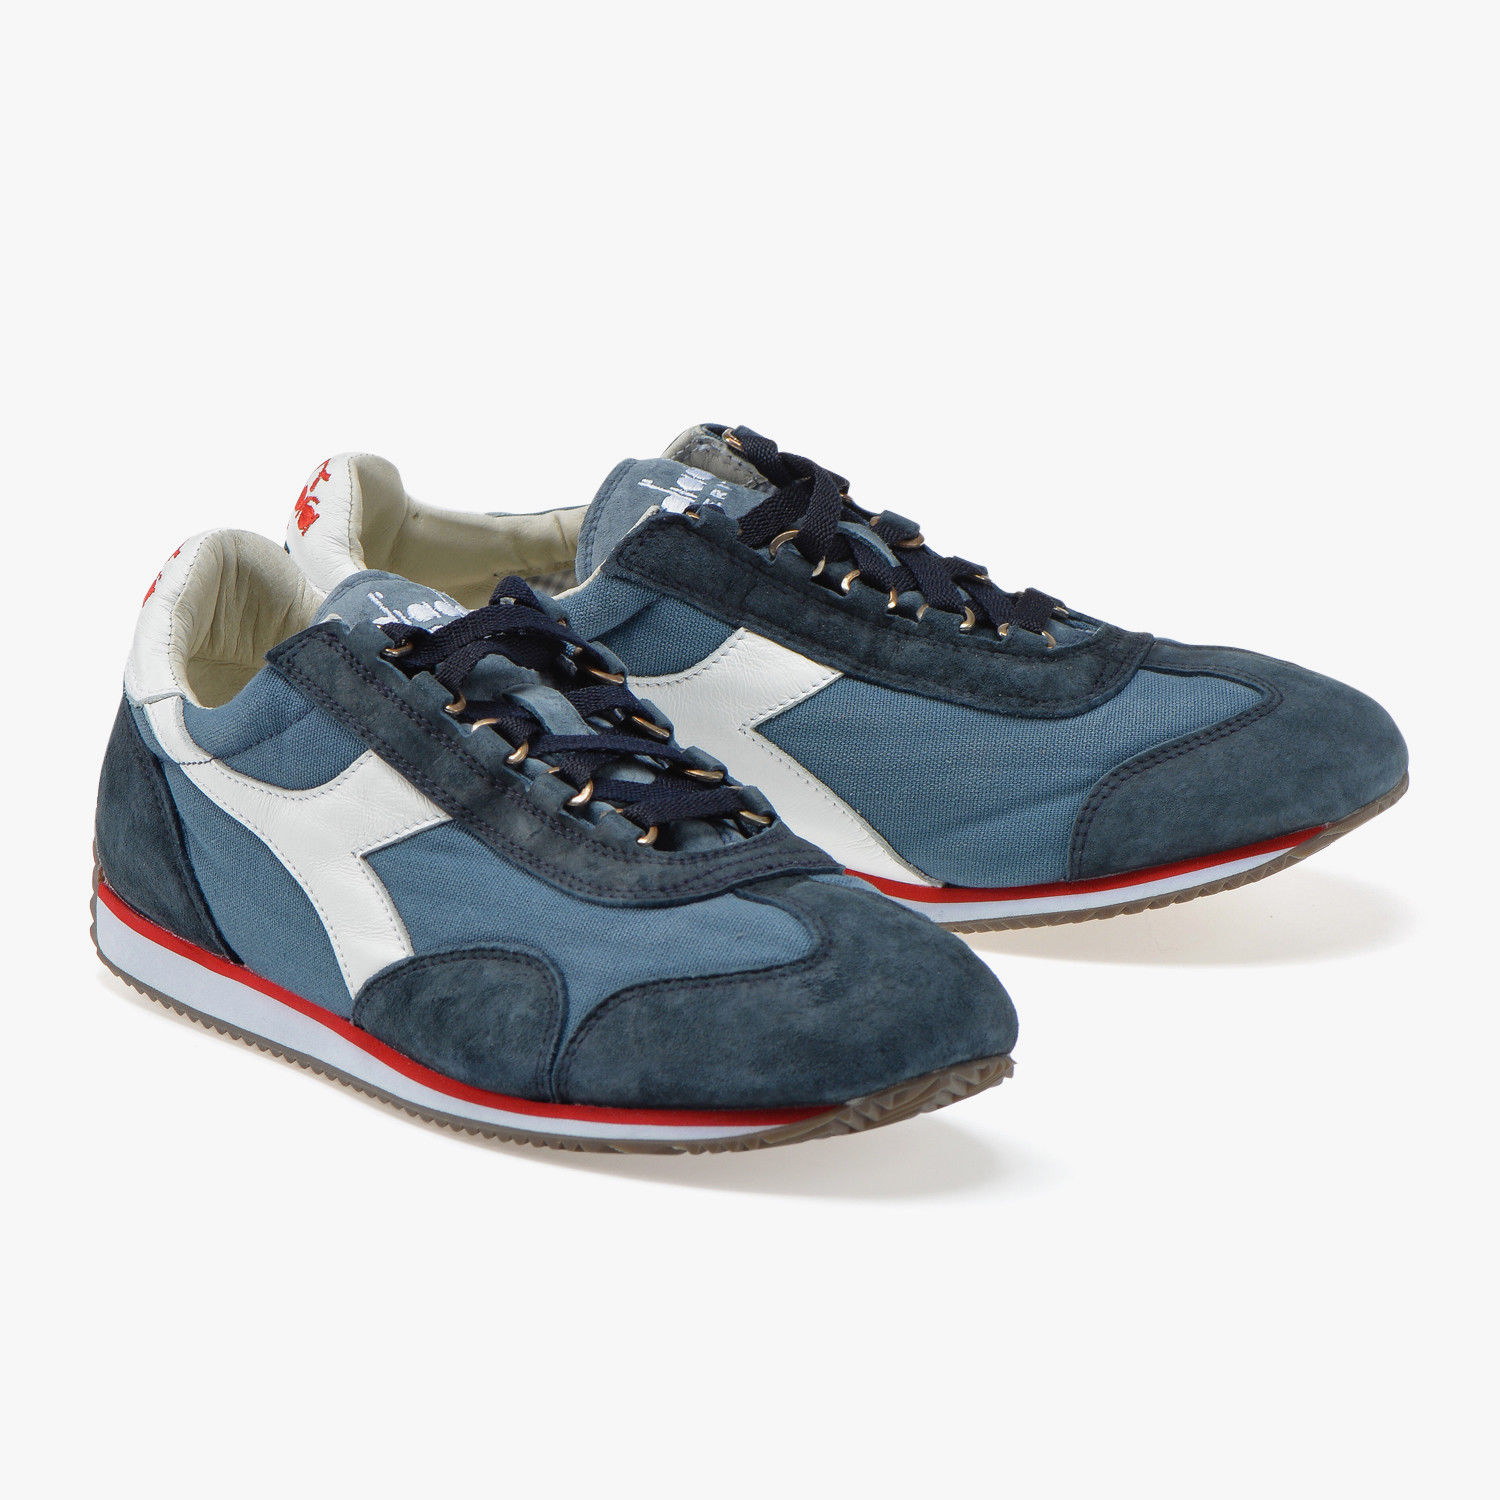 hot sale online 8d28f 95ad3 Sneakers scarpe DIADORA HERITAGE Equipe Stone Wash 12 China Blue/Blue Denim  2018